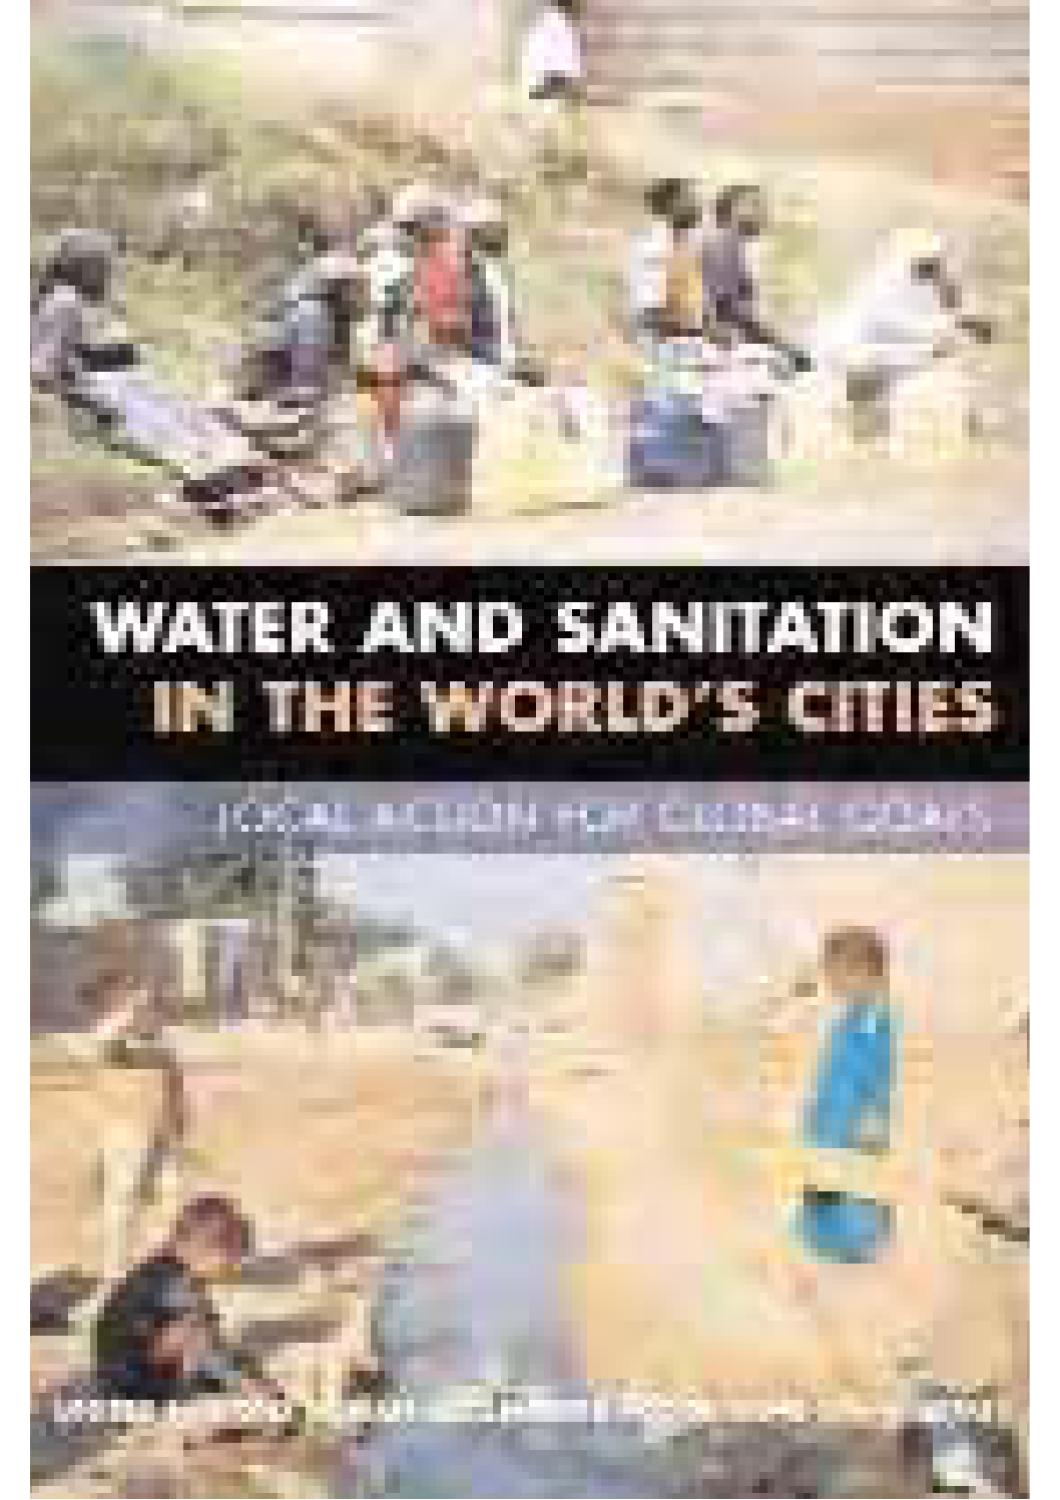 d951a0bd8 Water and Sanitation in the World's Cities: Local Action for Global Goals  by UN-Habitat - issuu